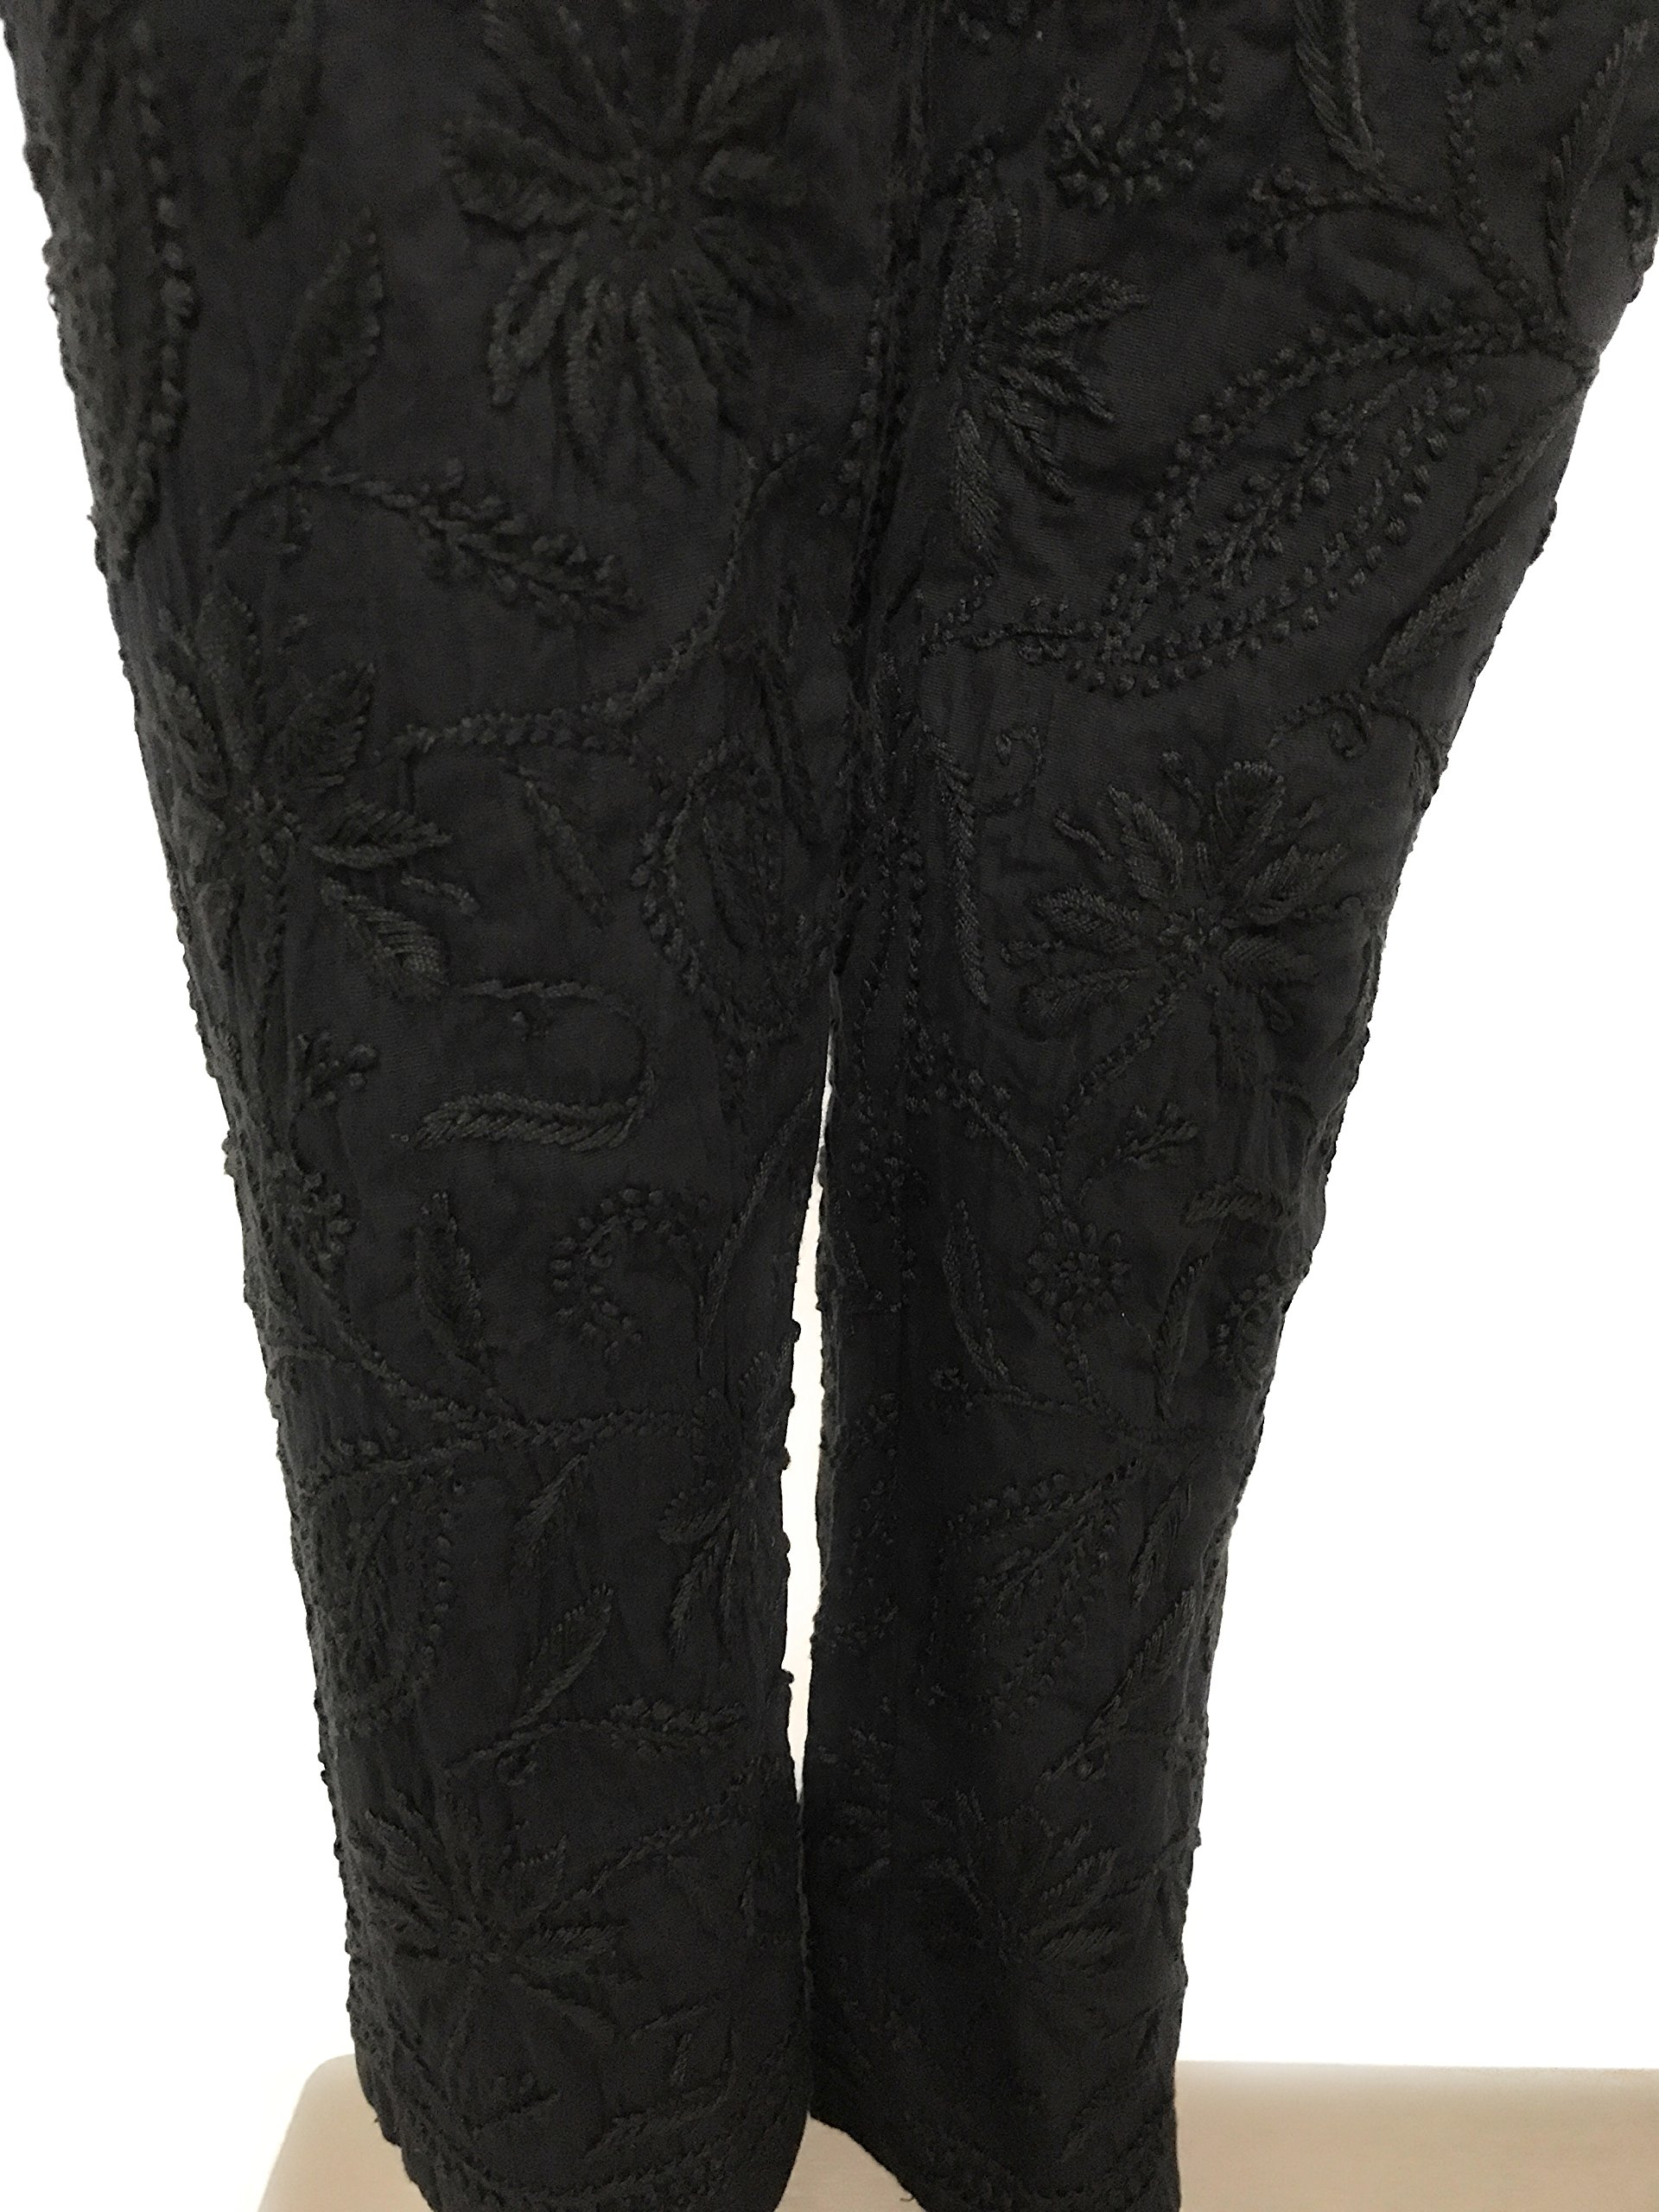 Lucknow Chikan-kari stretchable cotton leggings,narrow pants/Comfortable ankle length narrow pants leggings Black/Hand embroidered leggings/One size fits most (Black)